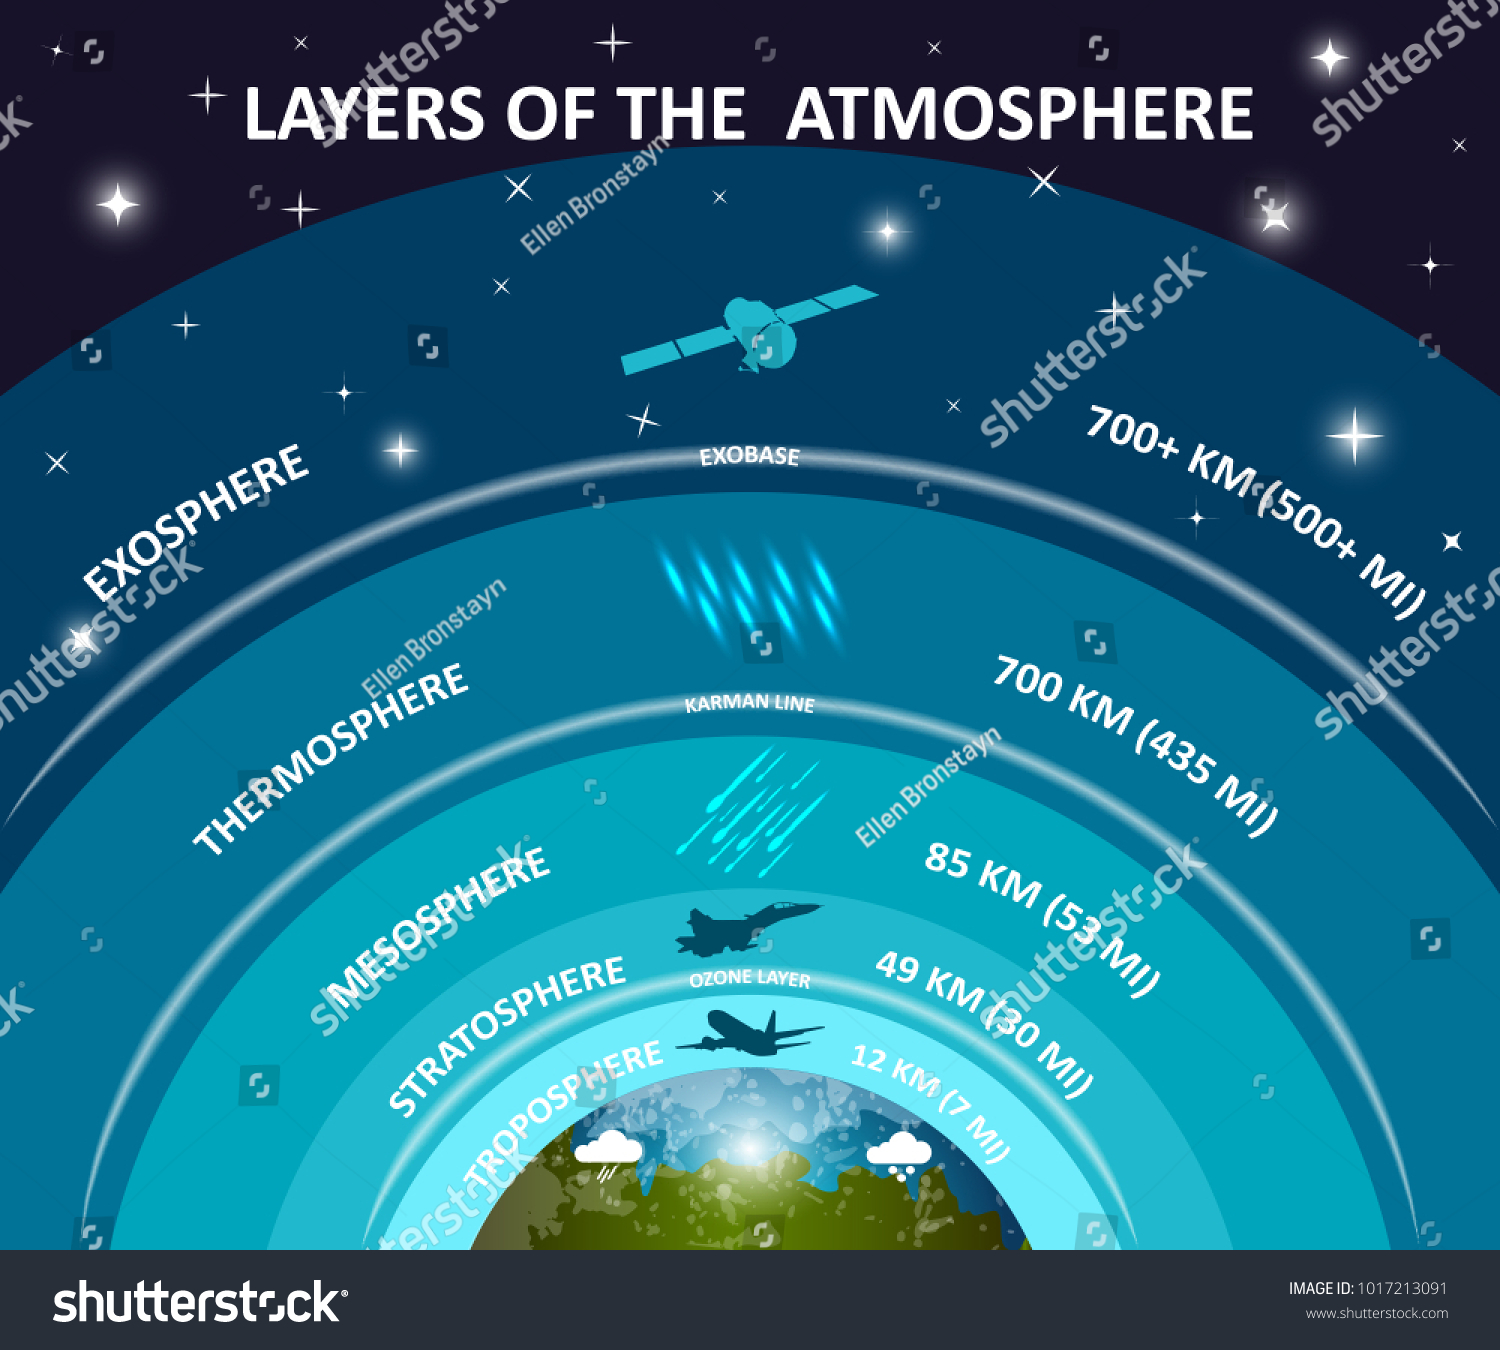 Layers earths atmosphere education infographics poster stock layers of earths atmosphere education infographics poster troposphere stratosphere mesosphere exosphere pooptronica Image collections